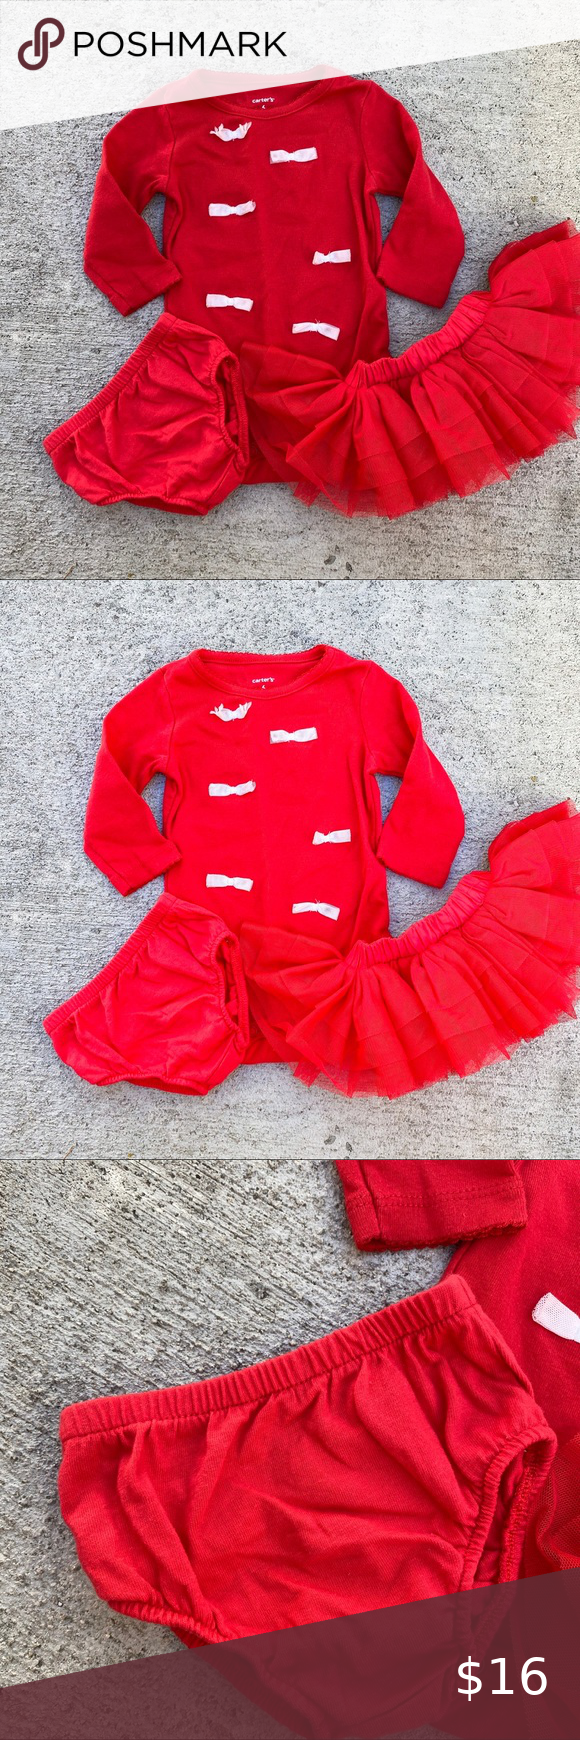 Photo of Carter's photo shoots red tutu new born 🦋top is size 6 months, bottoms are…